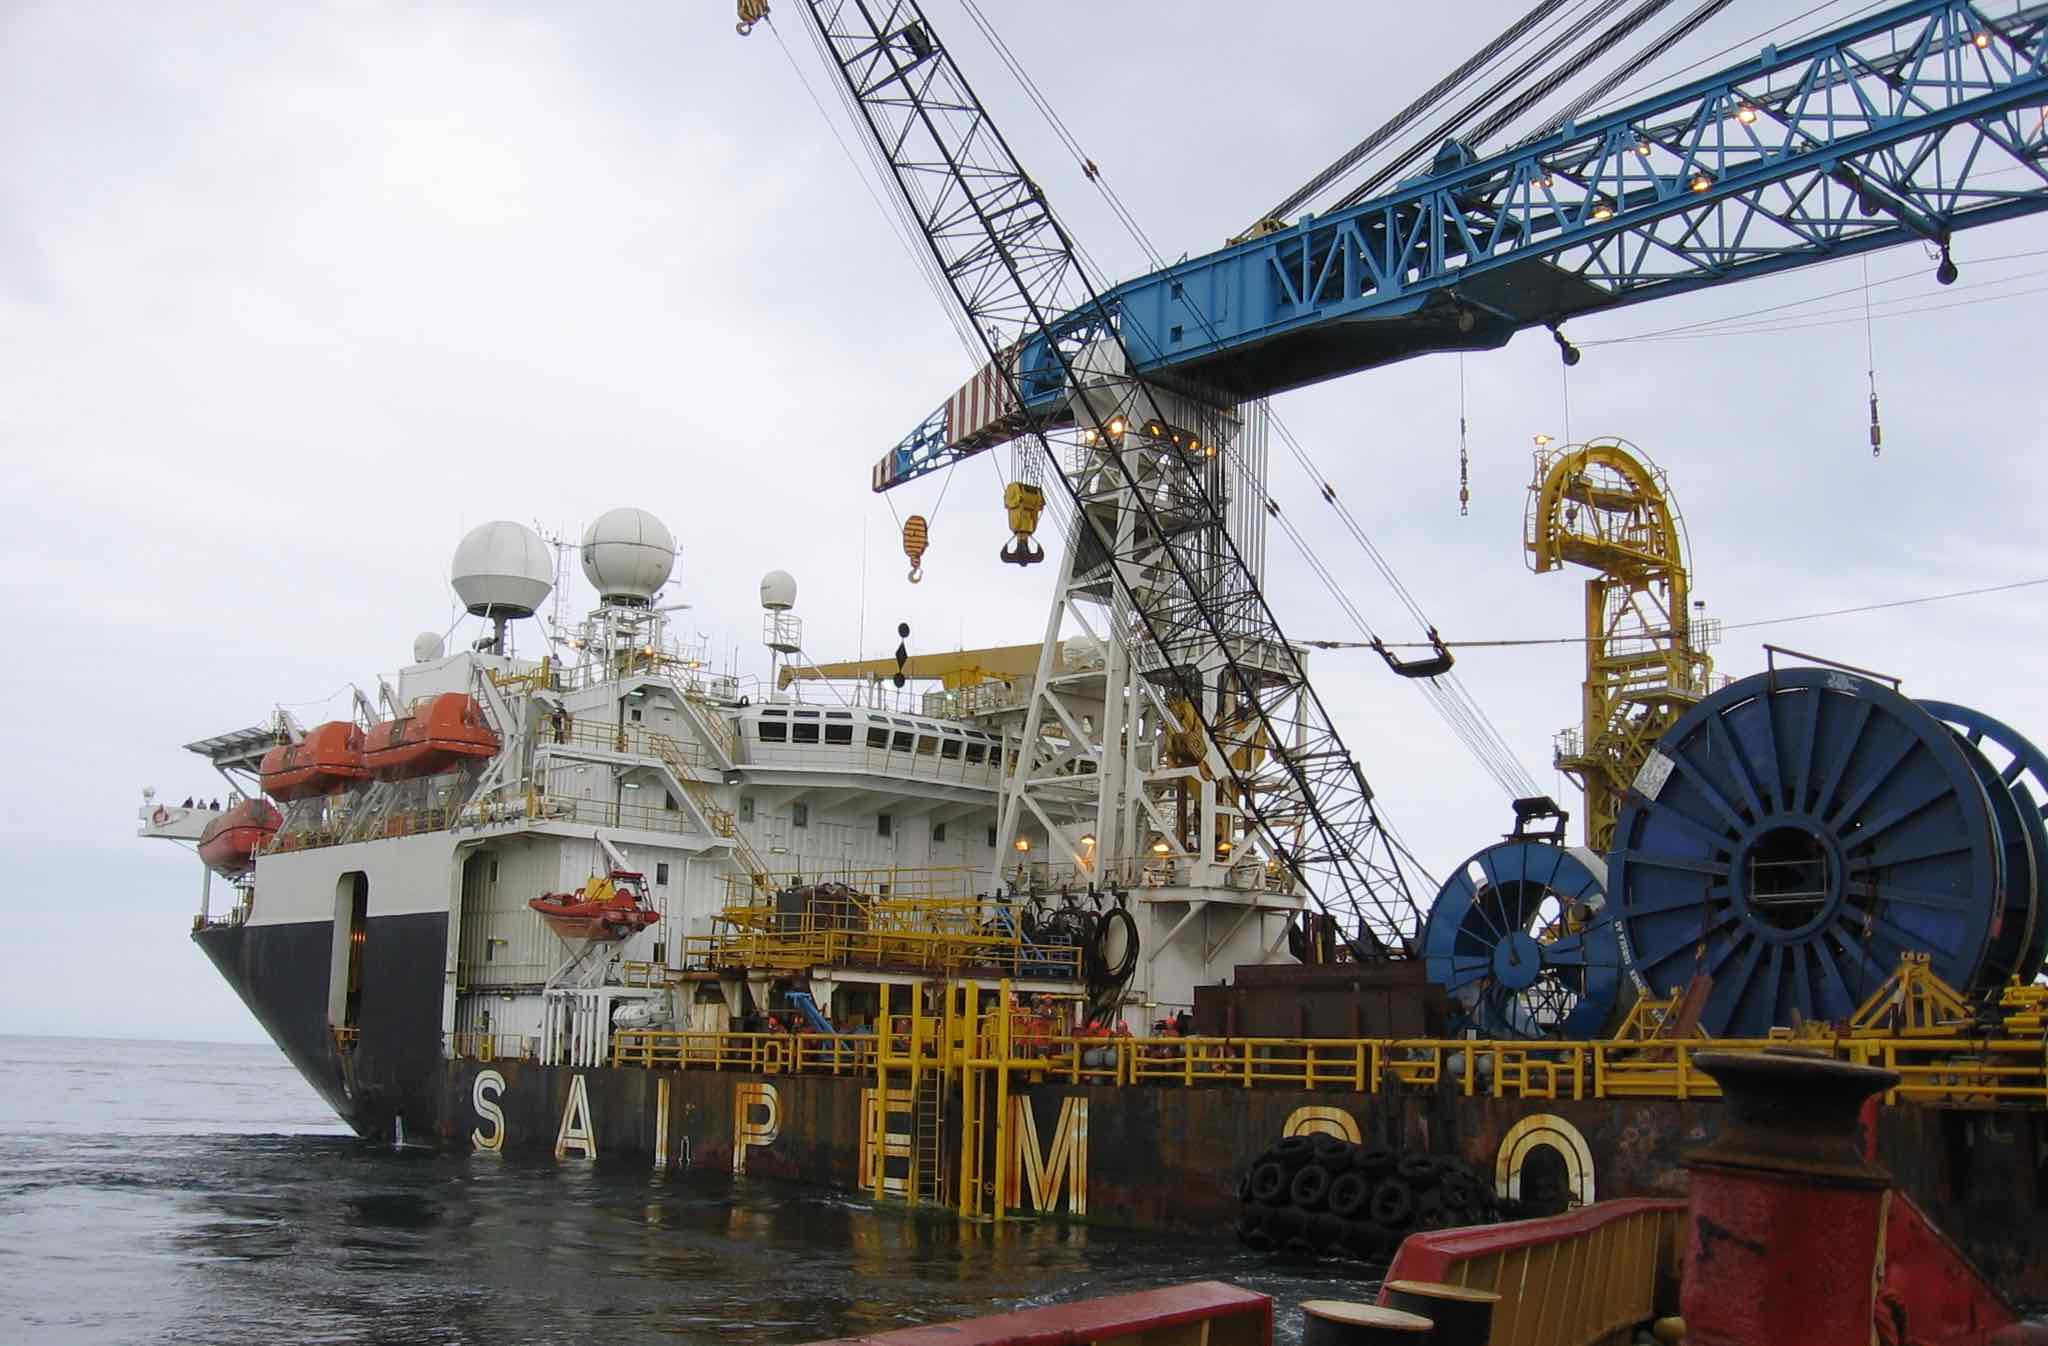 Saipem scores new offshore contracts in Guyana and Congo